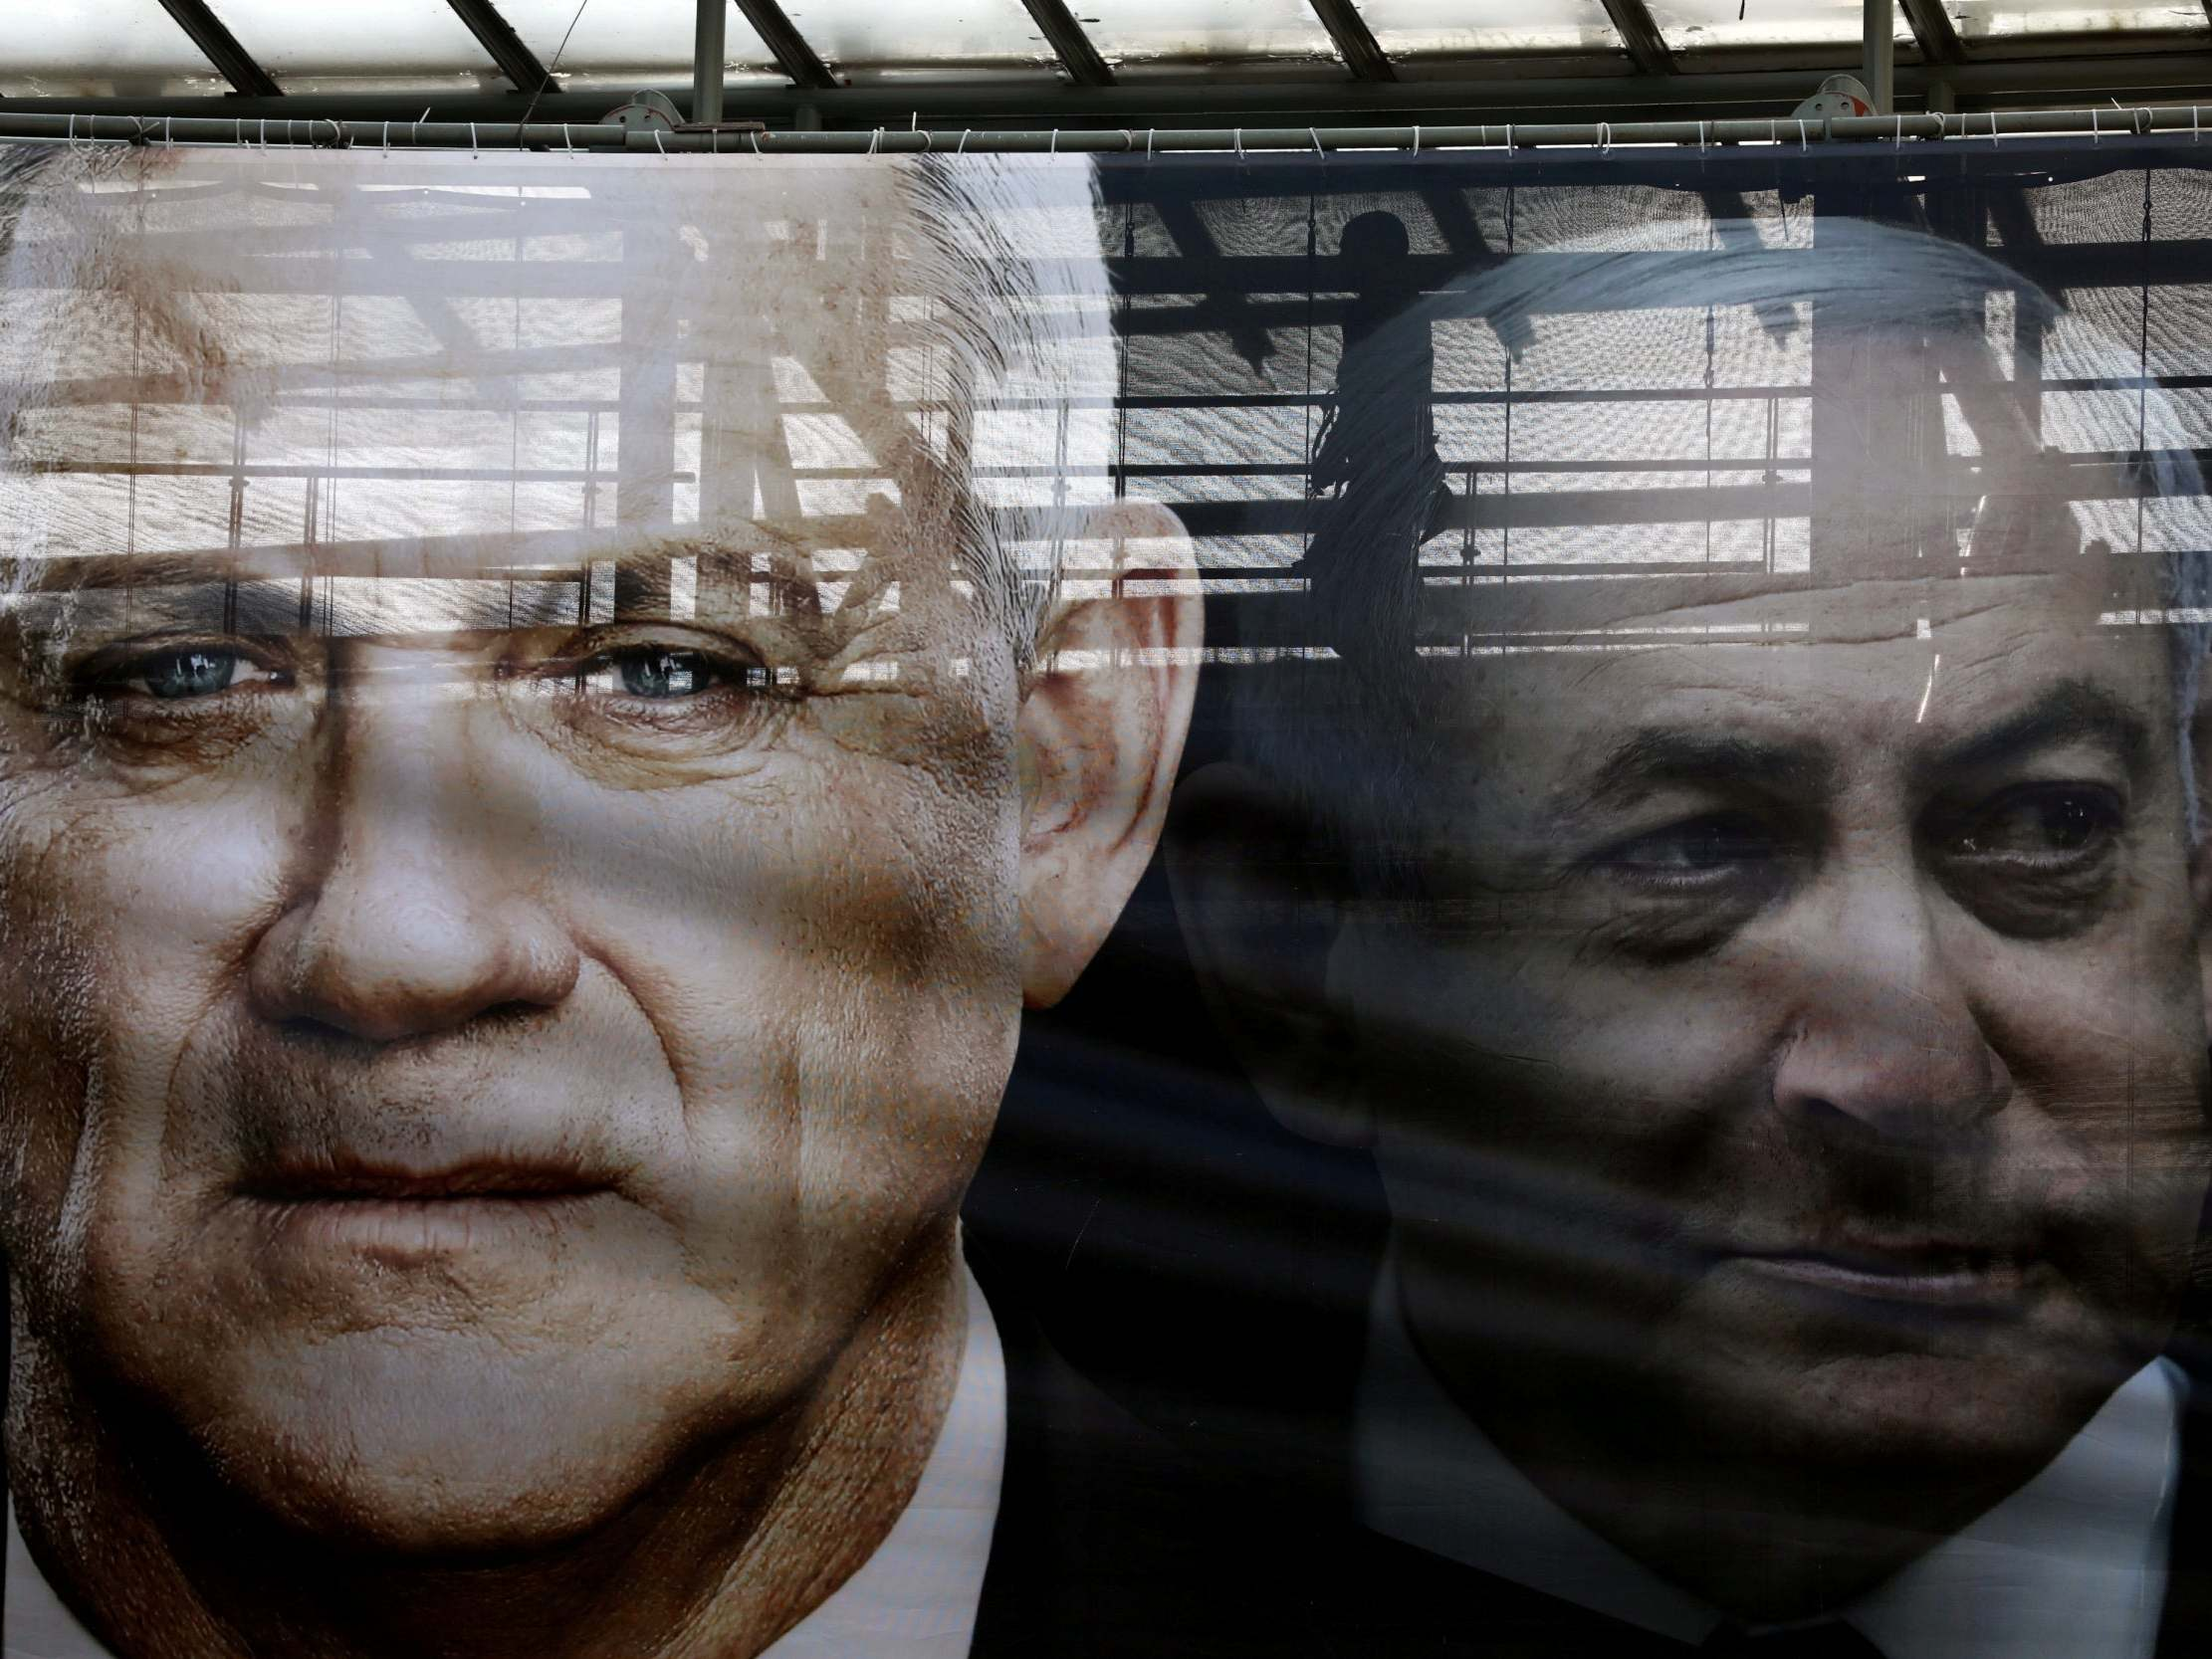 Israel's third election in a year: when it is happening and why is the country in political deadlock? - independent